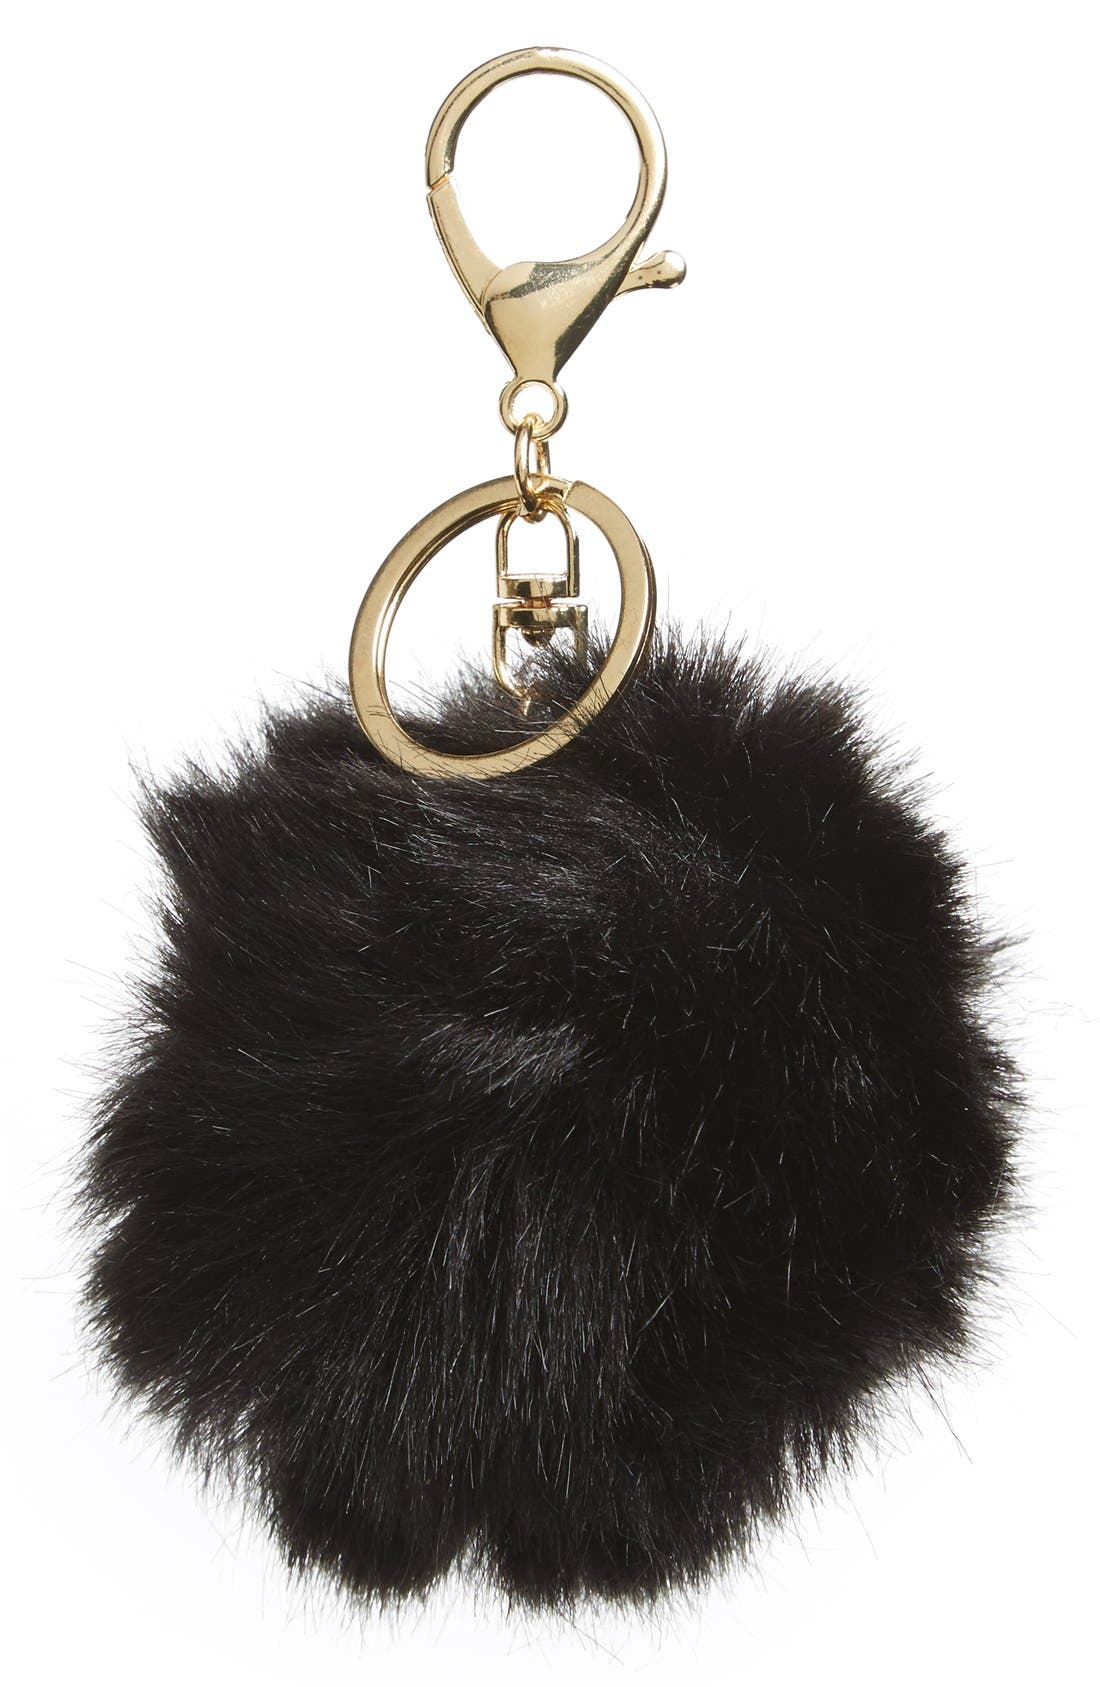 Alternate Image 1 Selected - BP. Faux Fur Pom Bag Charm